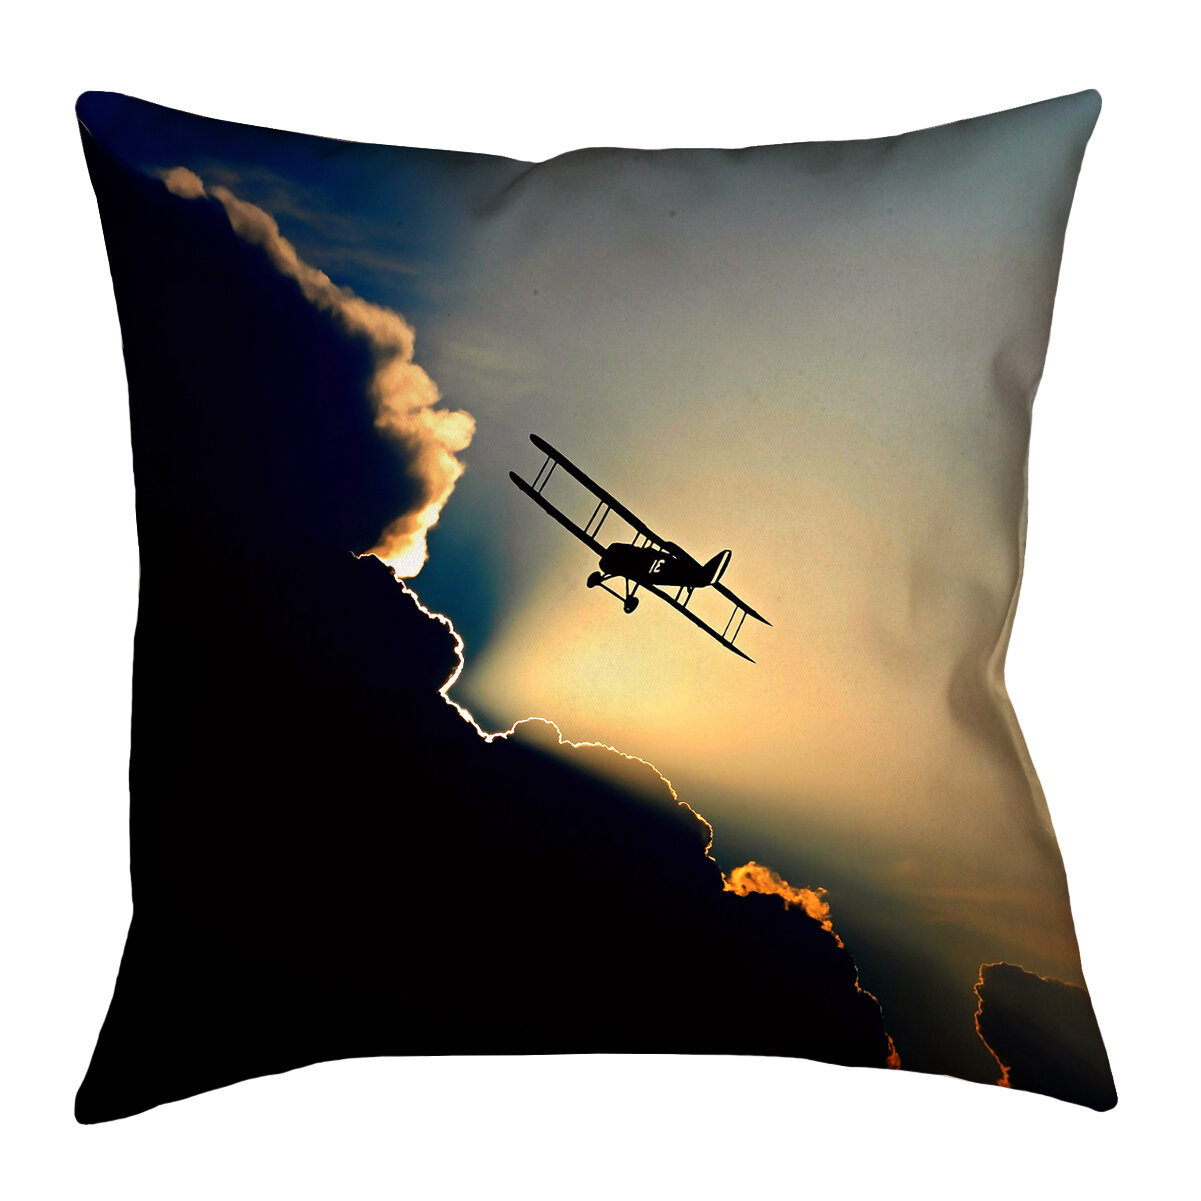 East Urban Home Plane In The Clouds Square Linen Throw Pillow Wayfair